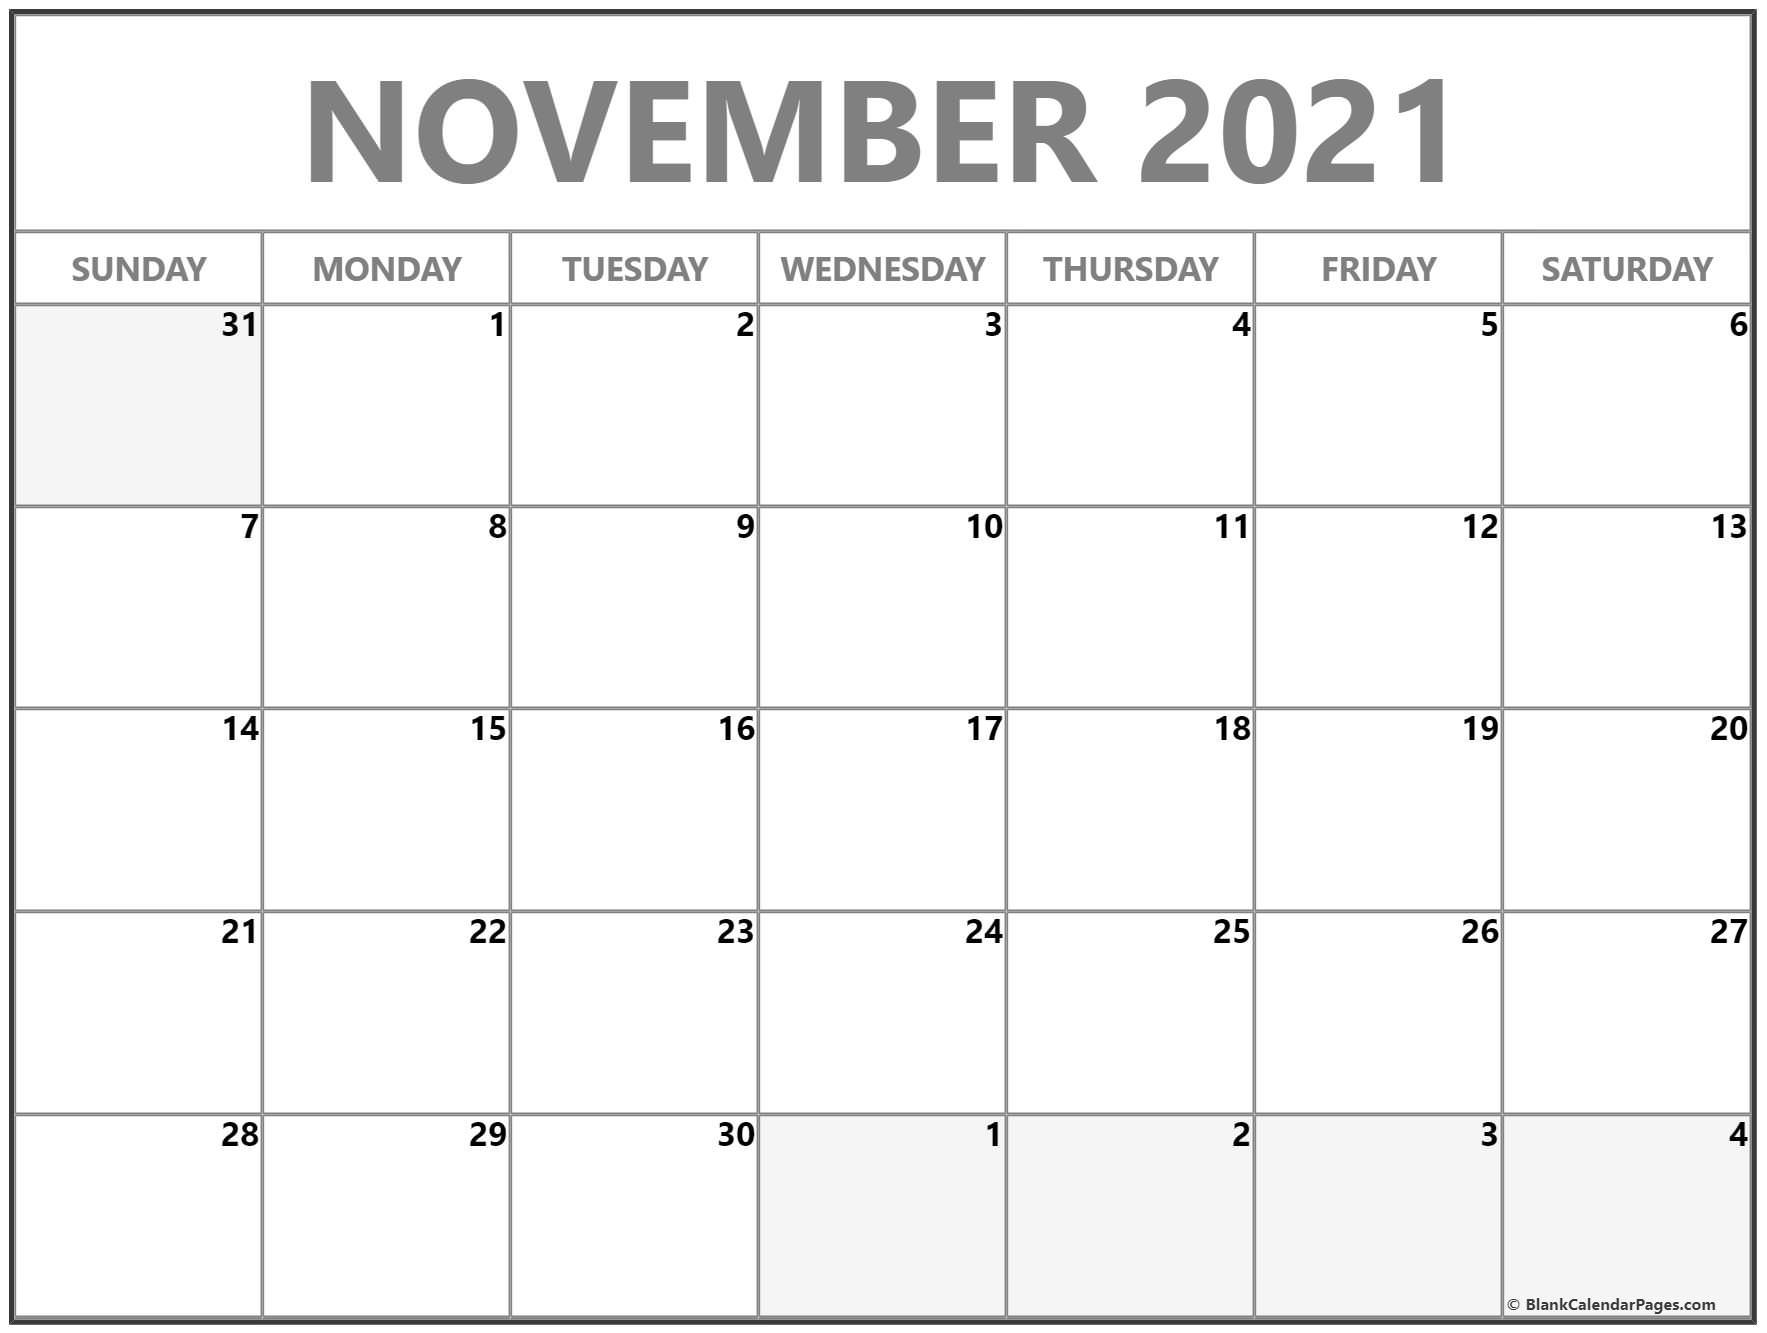 November 2021 blank monthly calendar template